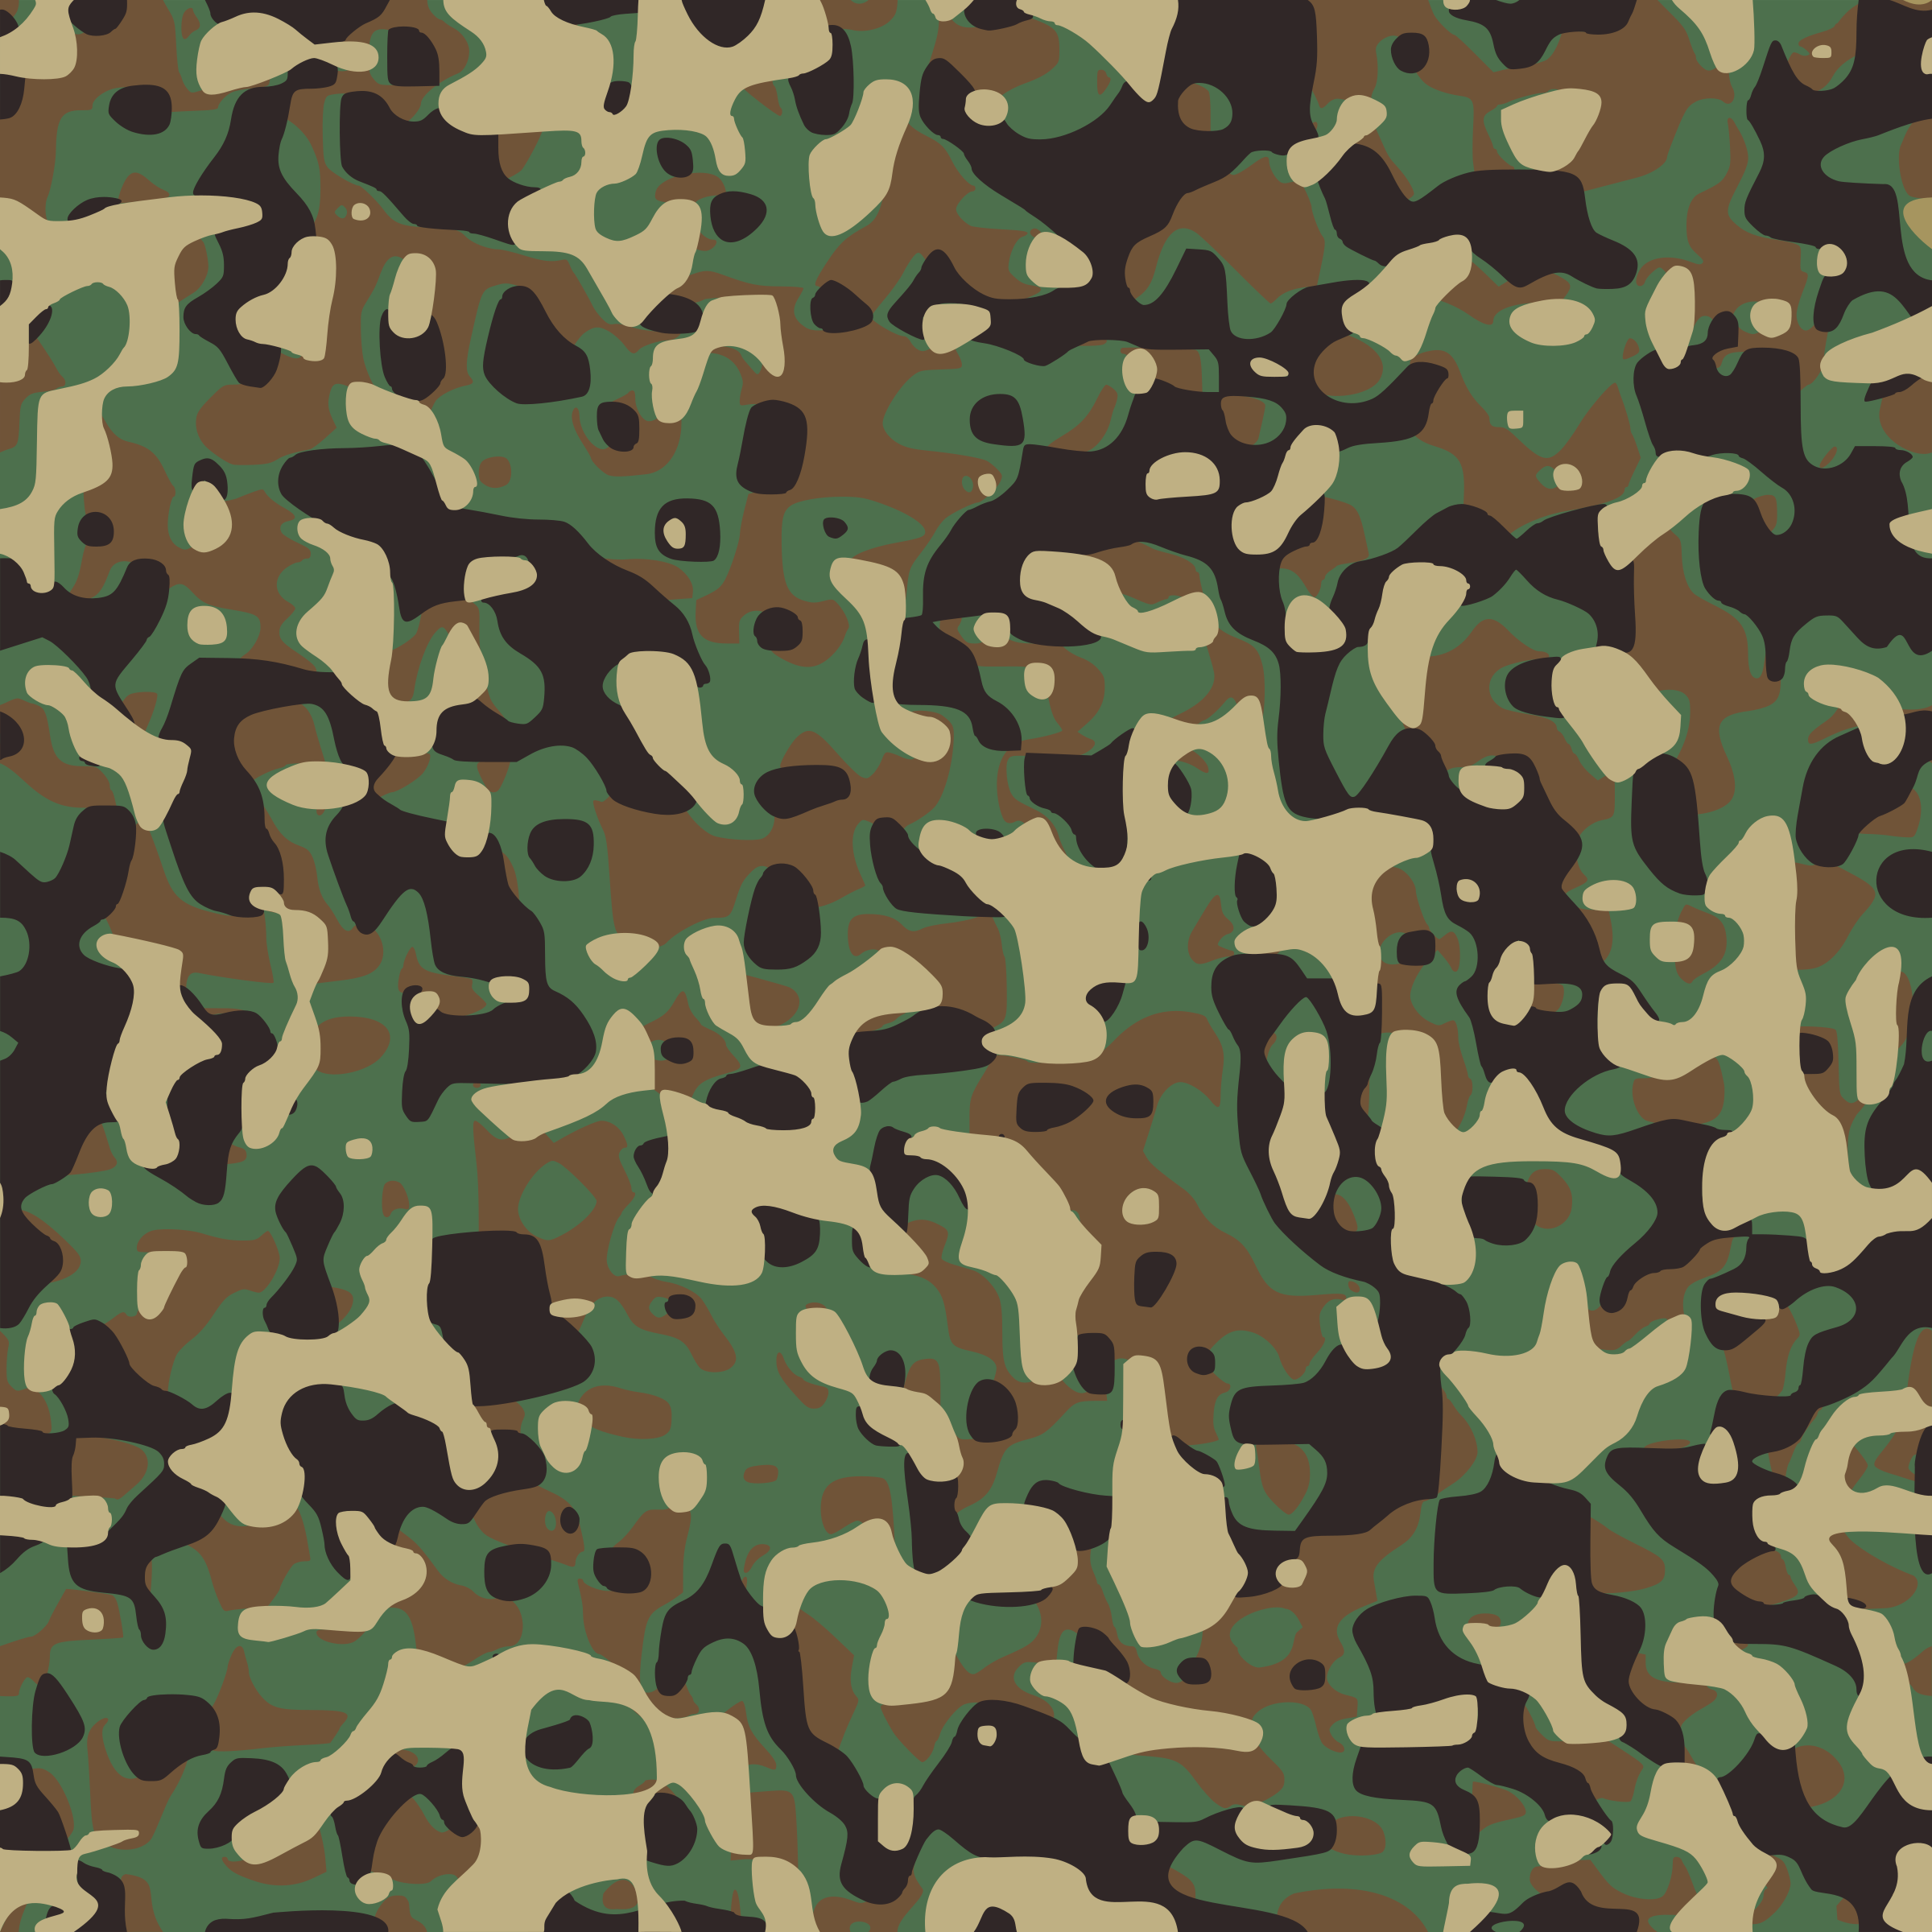 Army Camo Wallpaper - WallpaperSafari